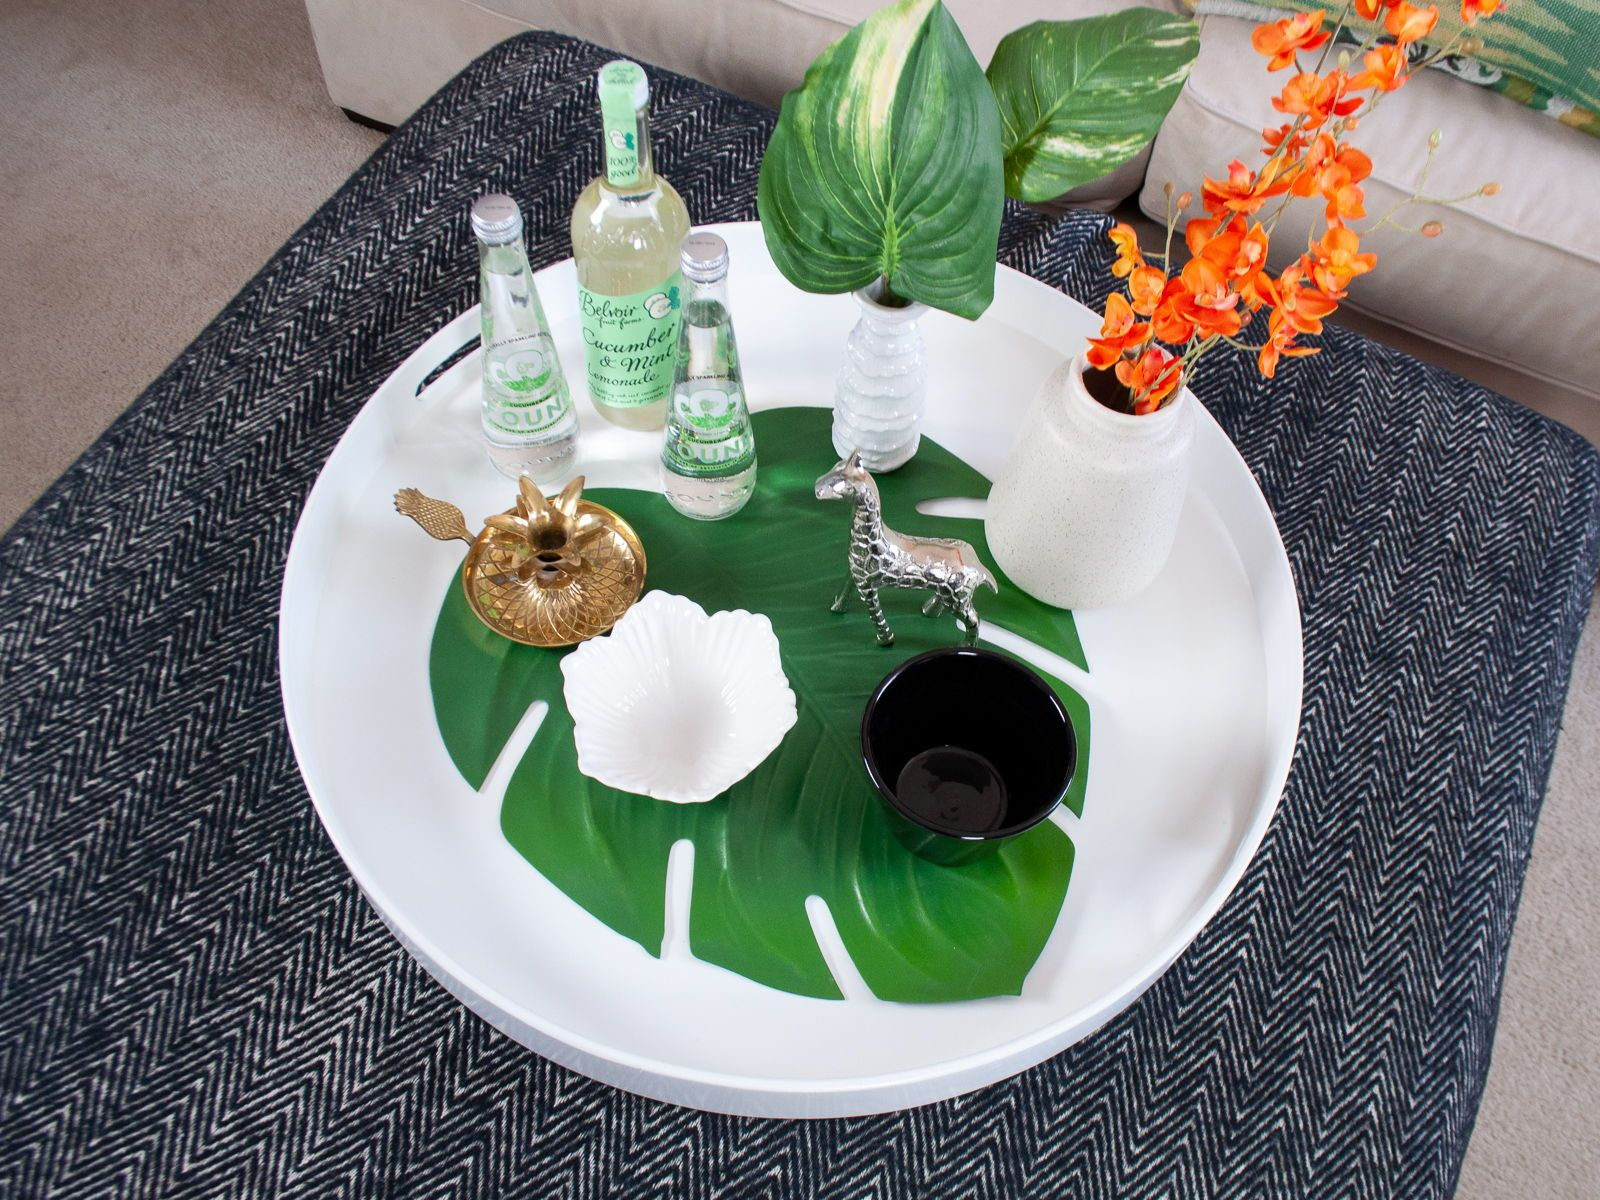 36+ White round coffee table tray ideas in 2021